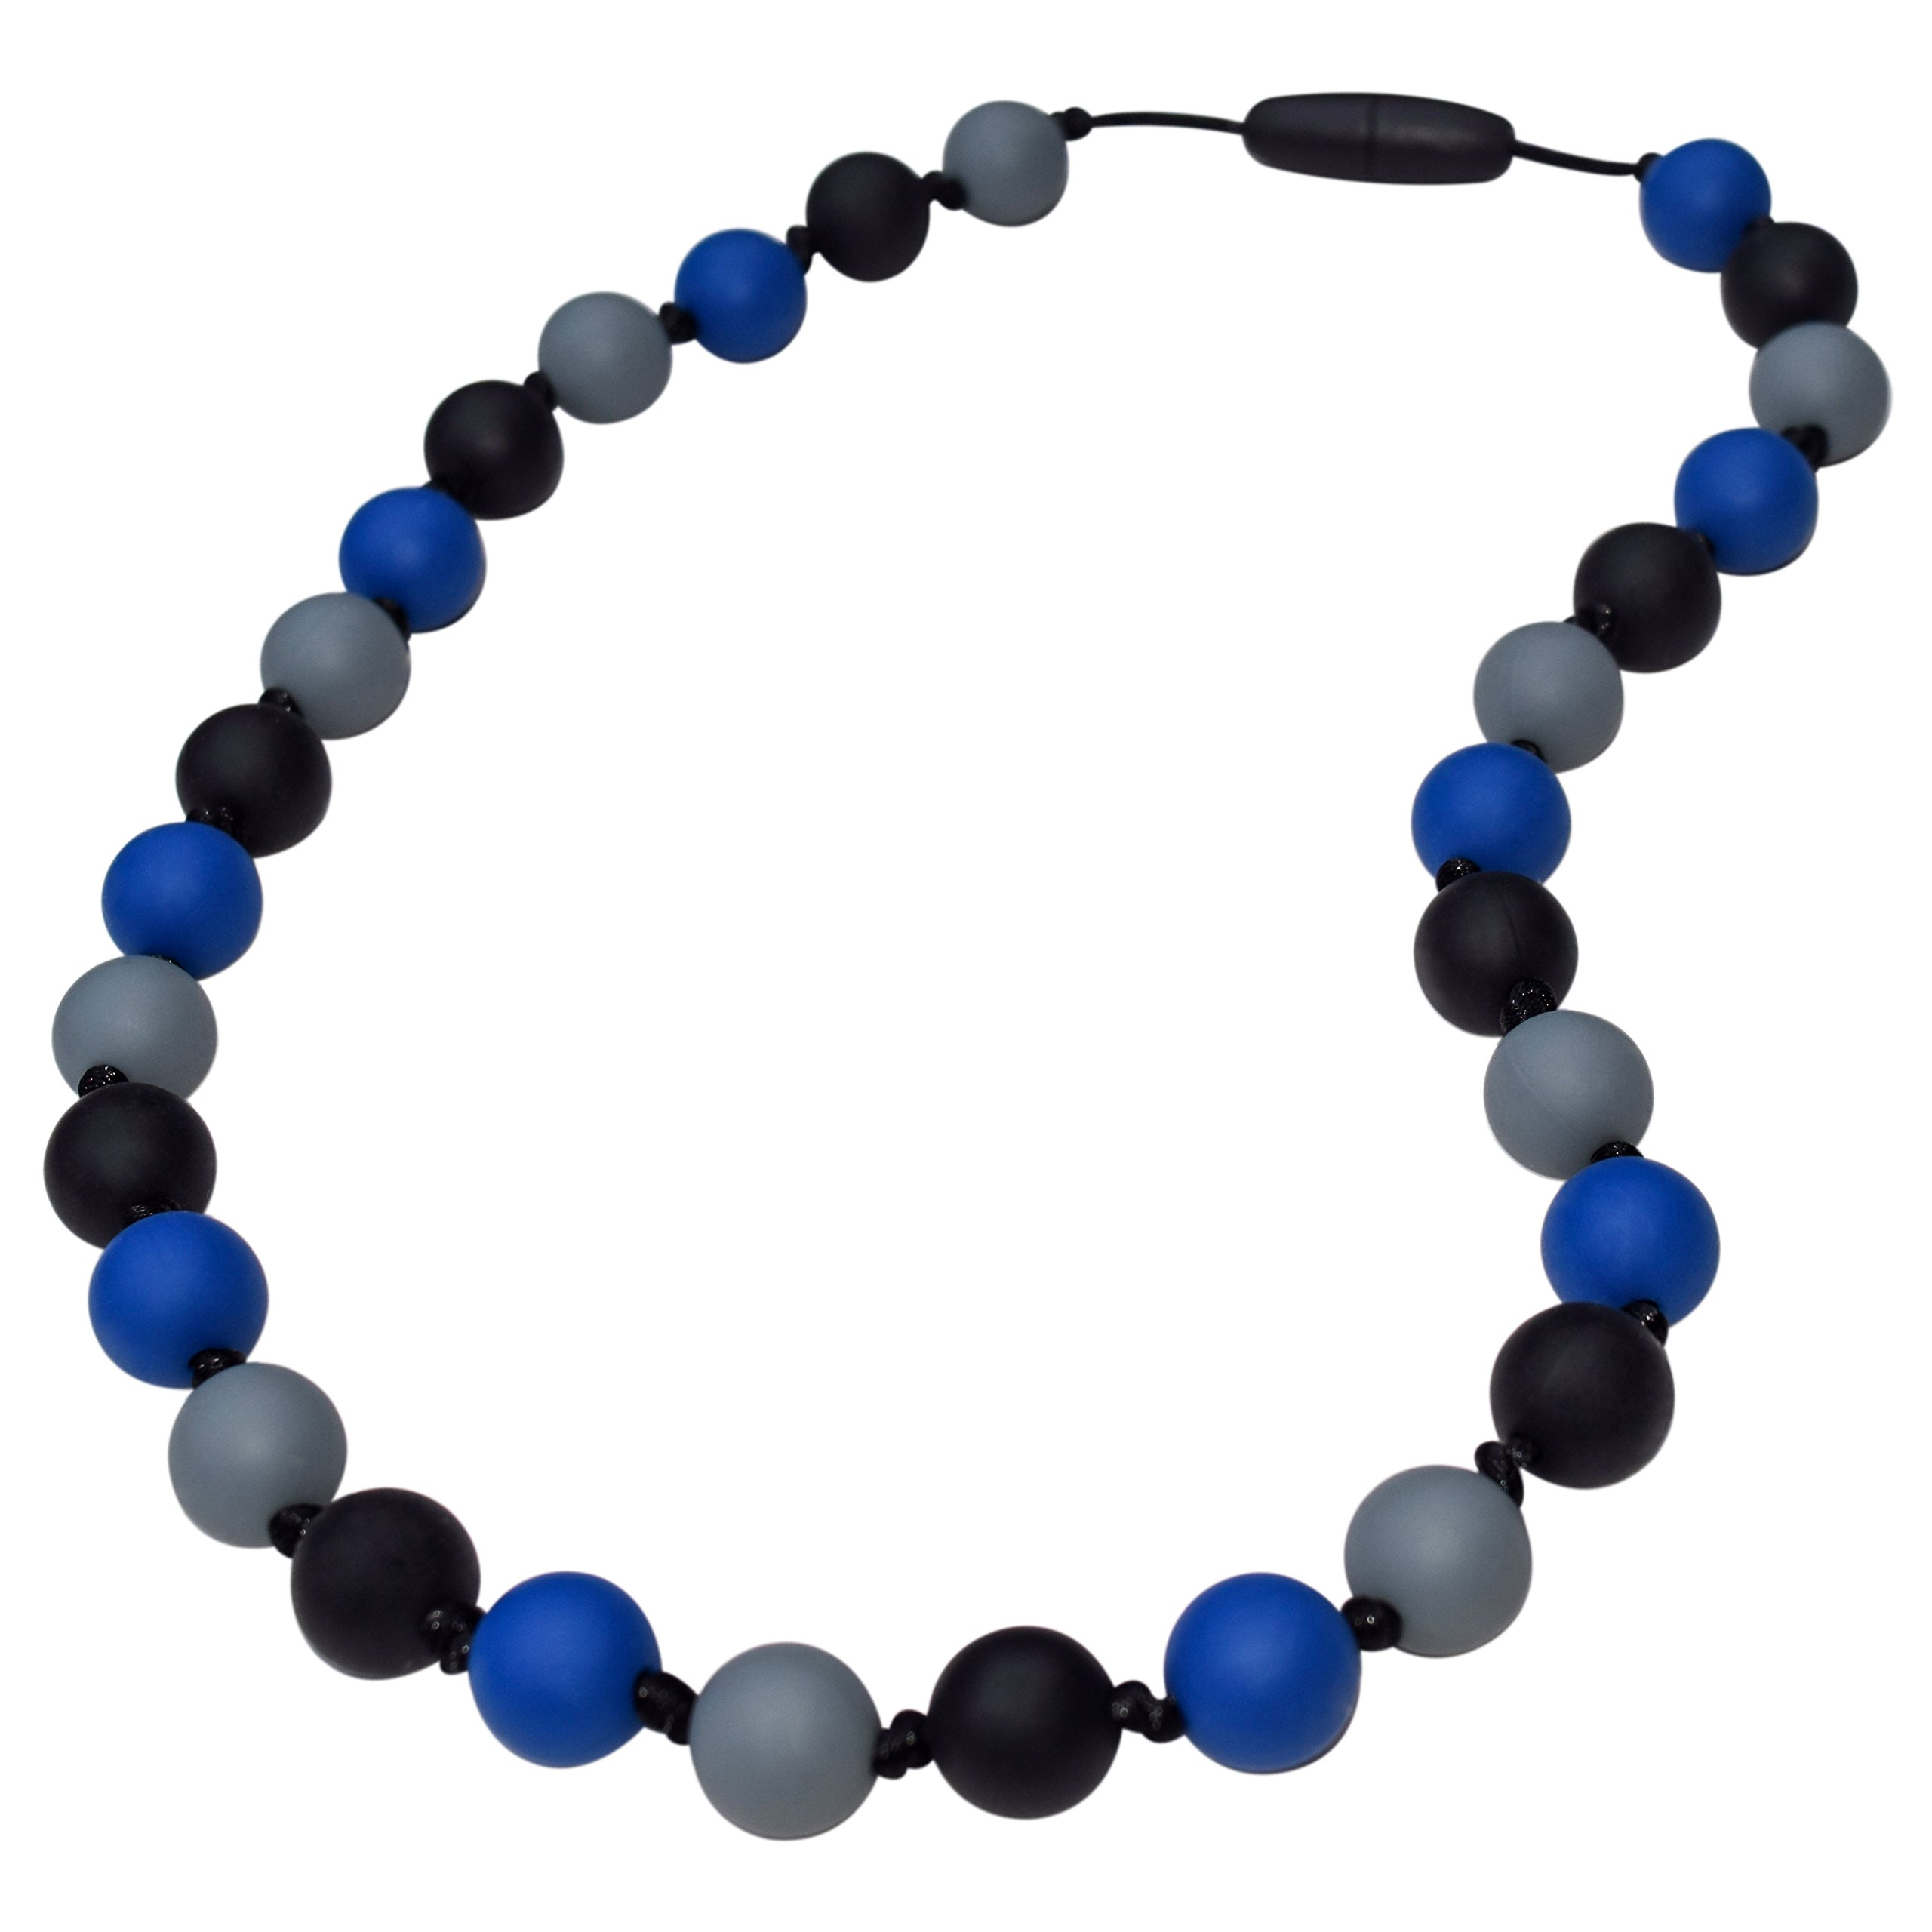 Munchables Camo Chew Necklace for Boys - Sensory Chewable Jewelry (Navy)